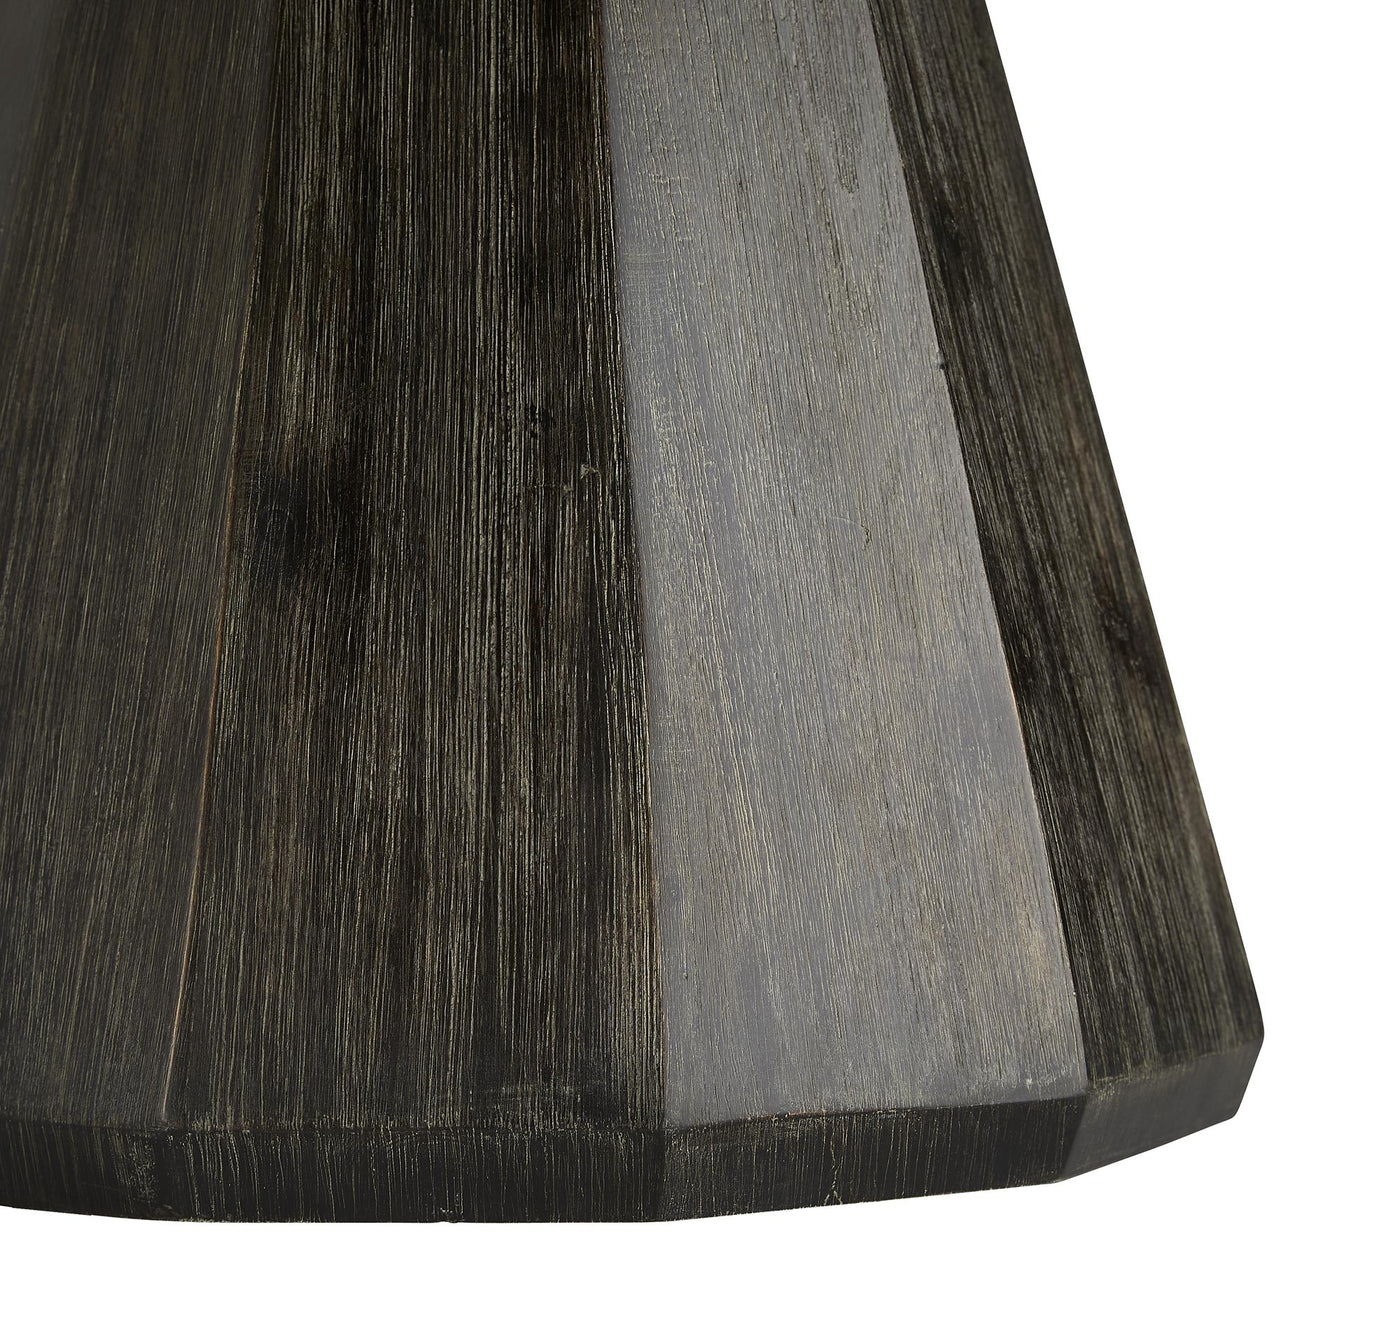 arteriors serene table base wood